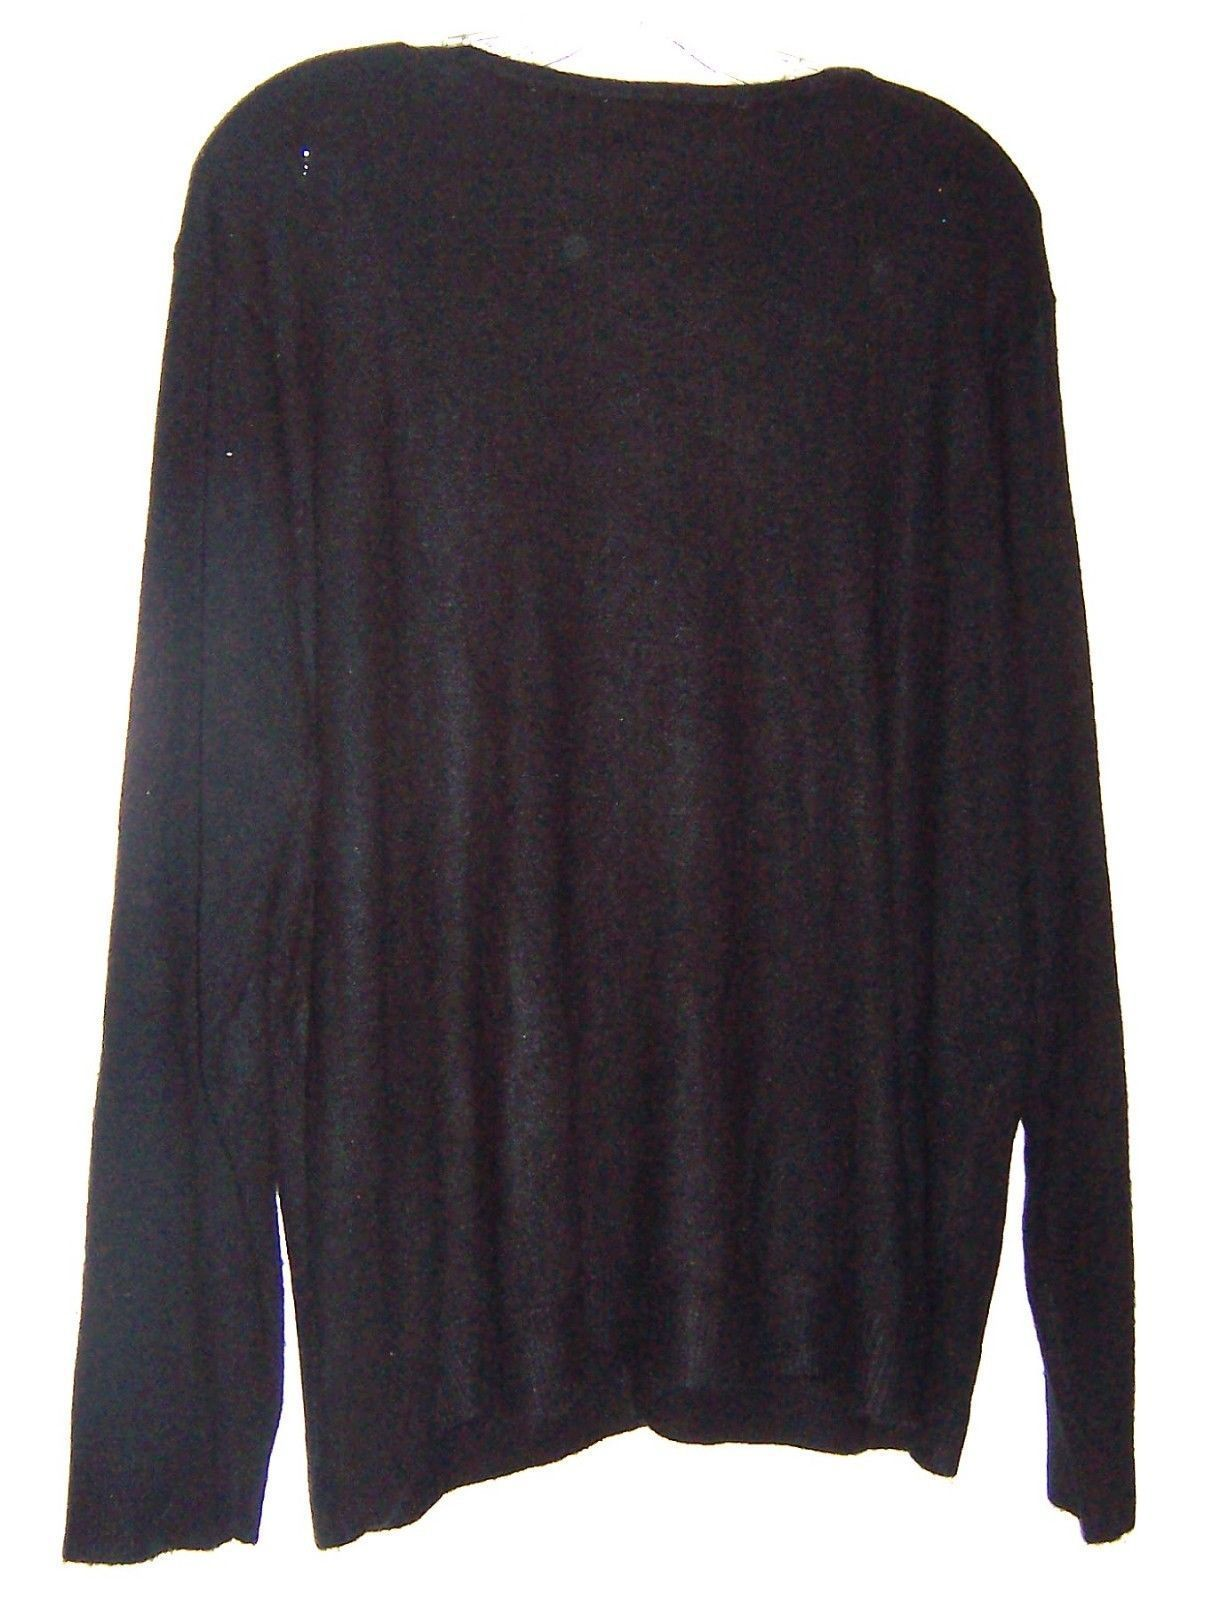 Size XL - Plus Size 3X ~ Villager Long Sleeve Sweaters, some with Beaded Accents image 5